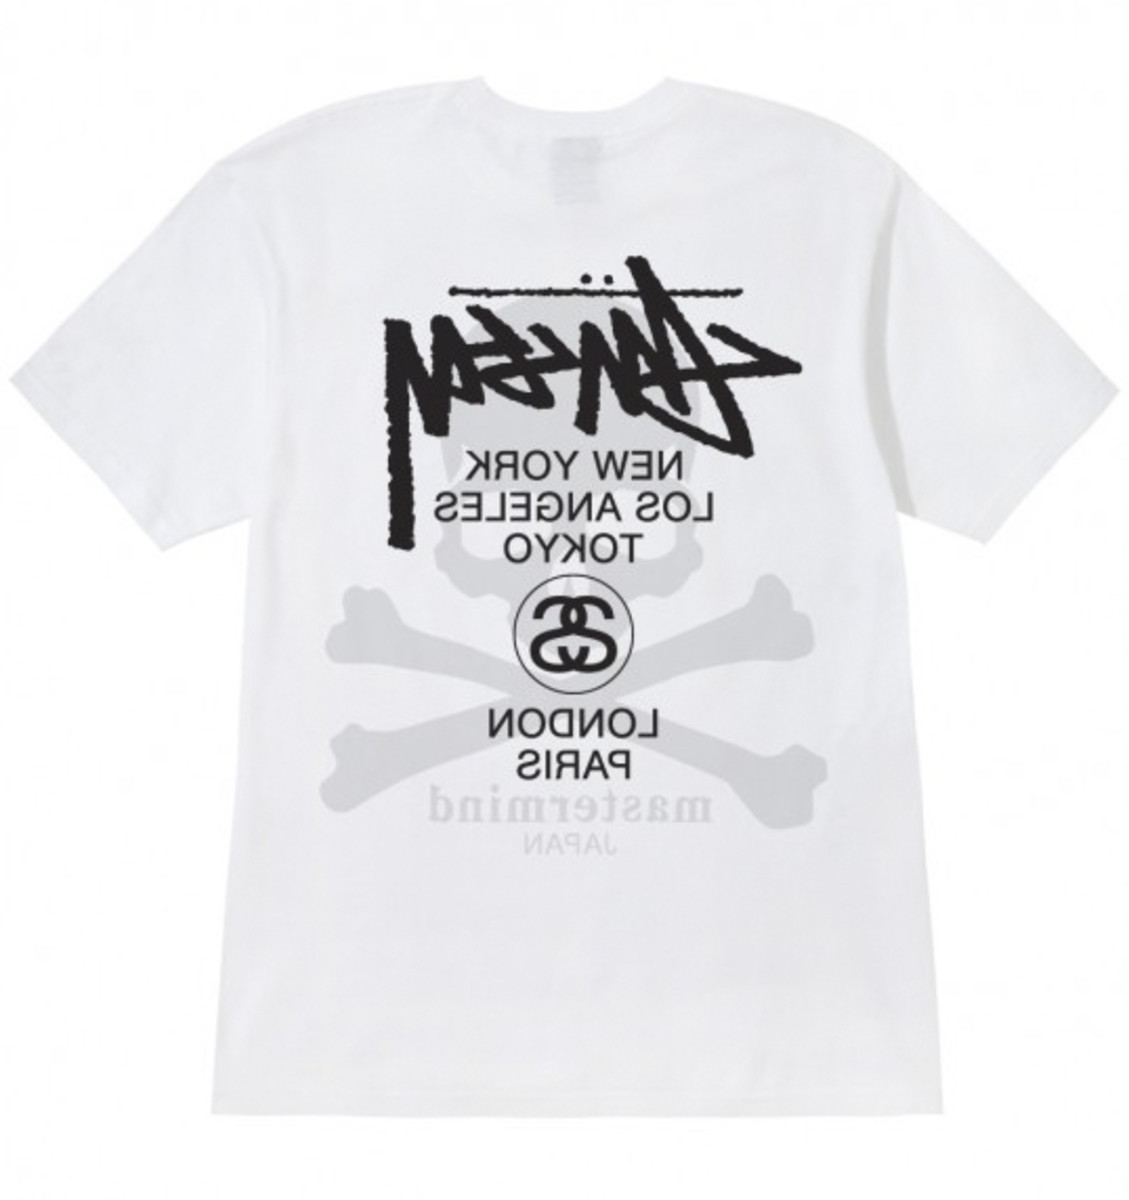 stussy-mastermind-japan-release-1-available-now-02